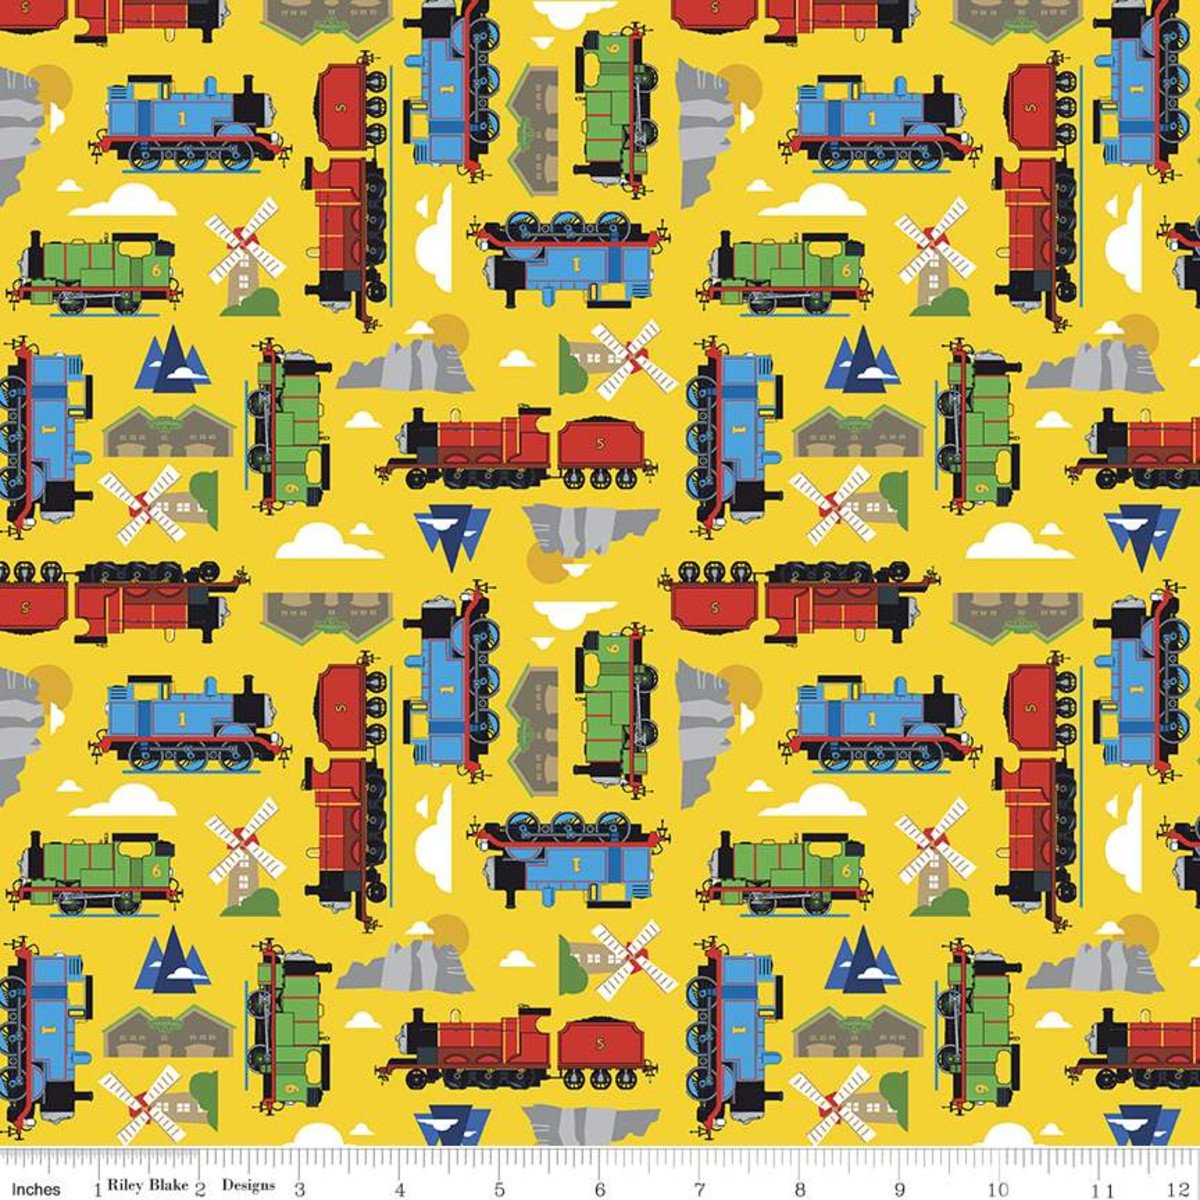 C11002-YELLOW - Riley Blake Thomas and Friends - All Aboard Sodor - Yellow